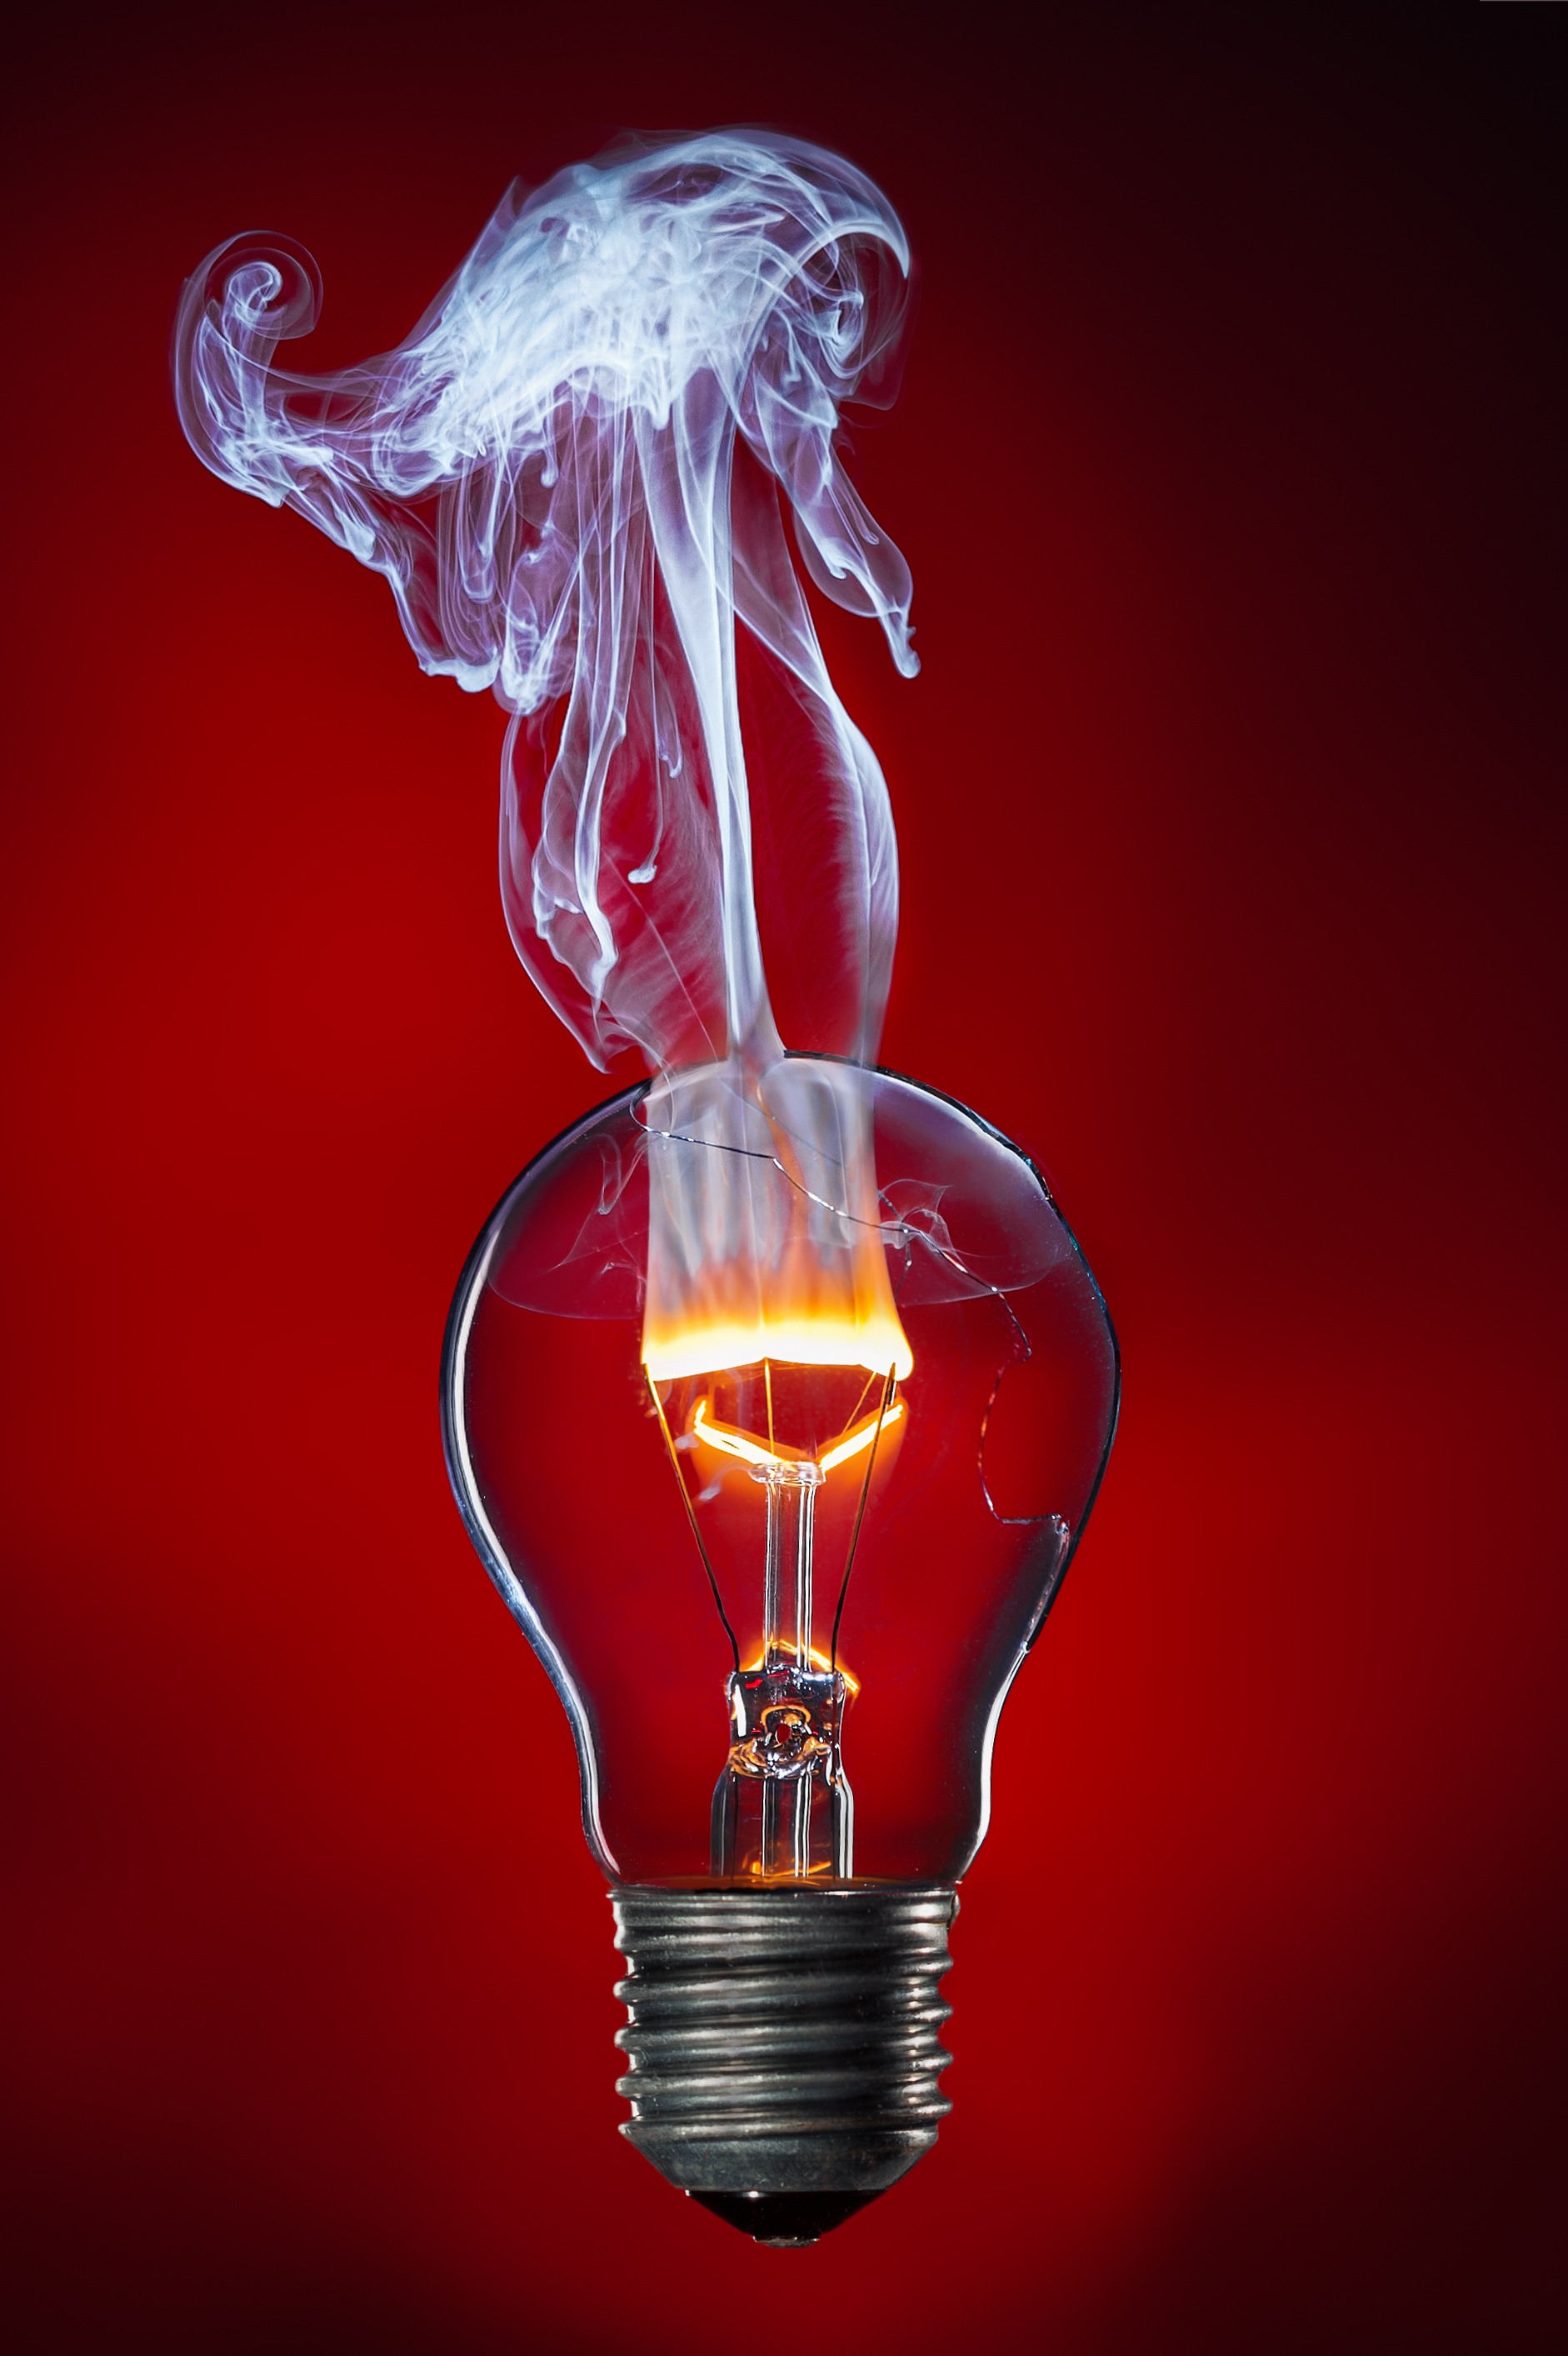 The tungsten filament burning with a flame in the light bulb.